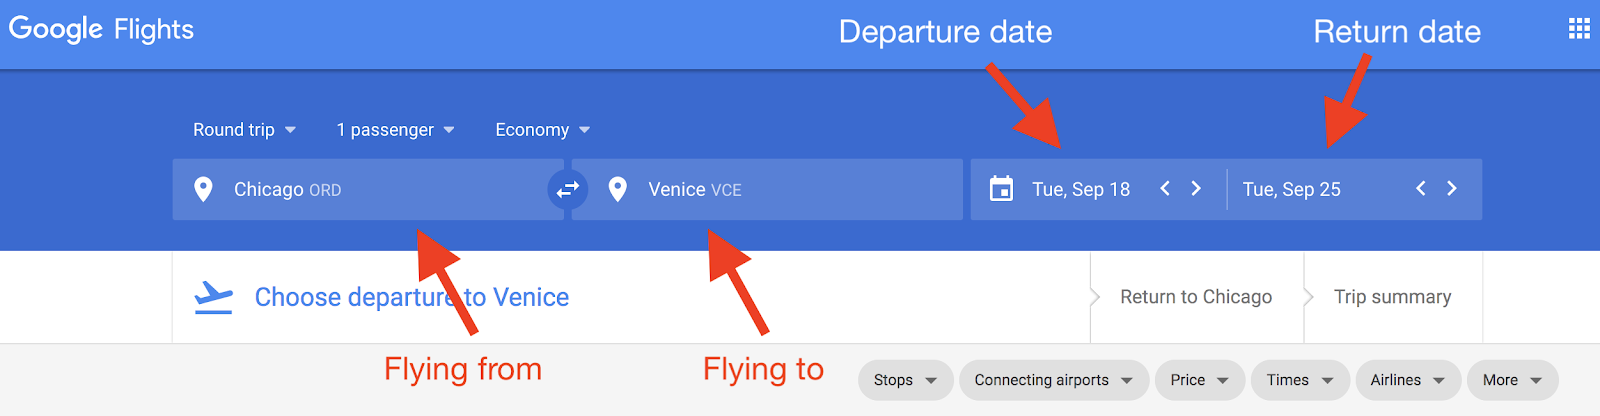 Google Flights how to select departure and arrival airports cities